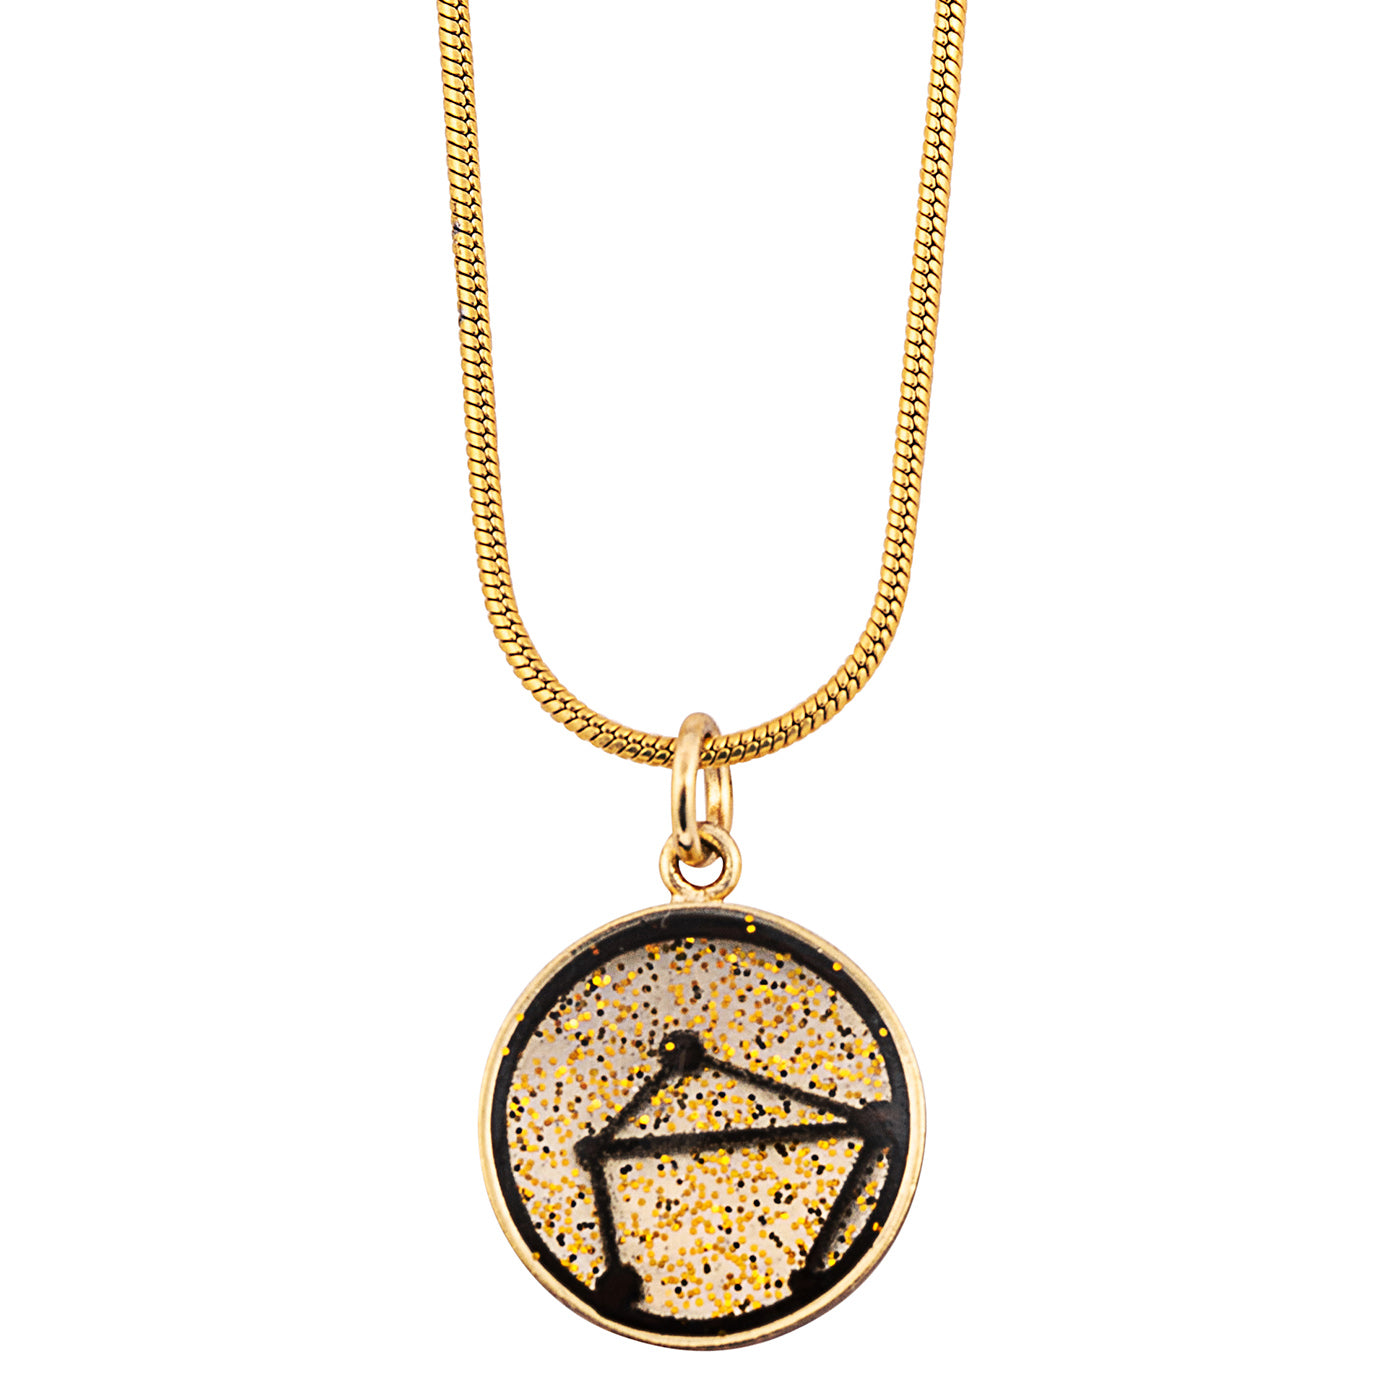 Collar Sostenible Signo Zodiacal Libra